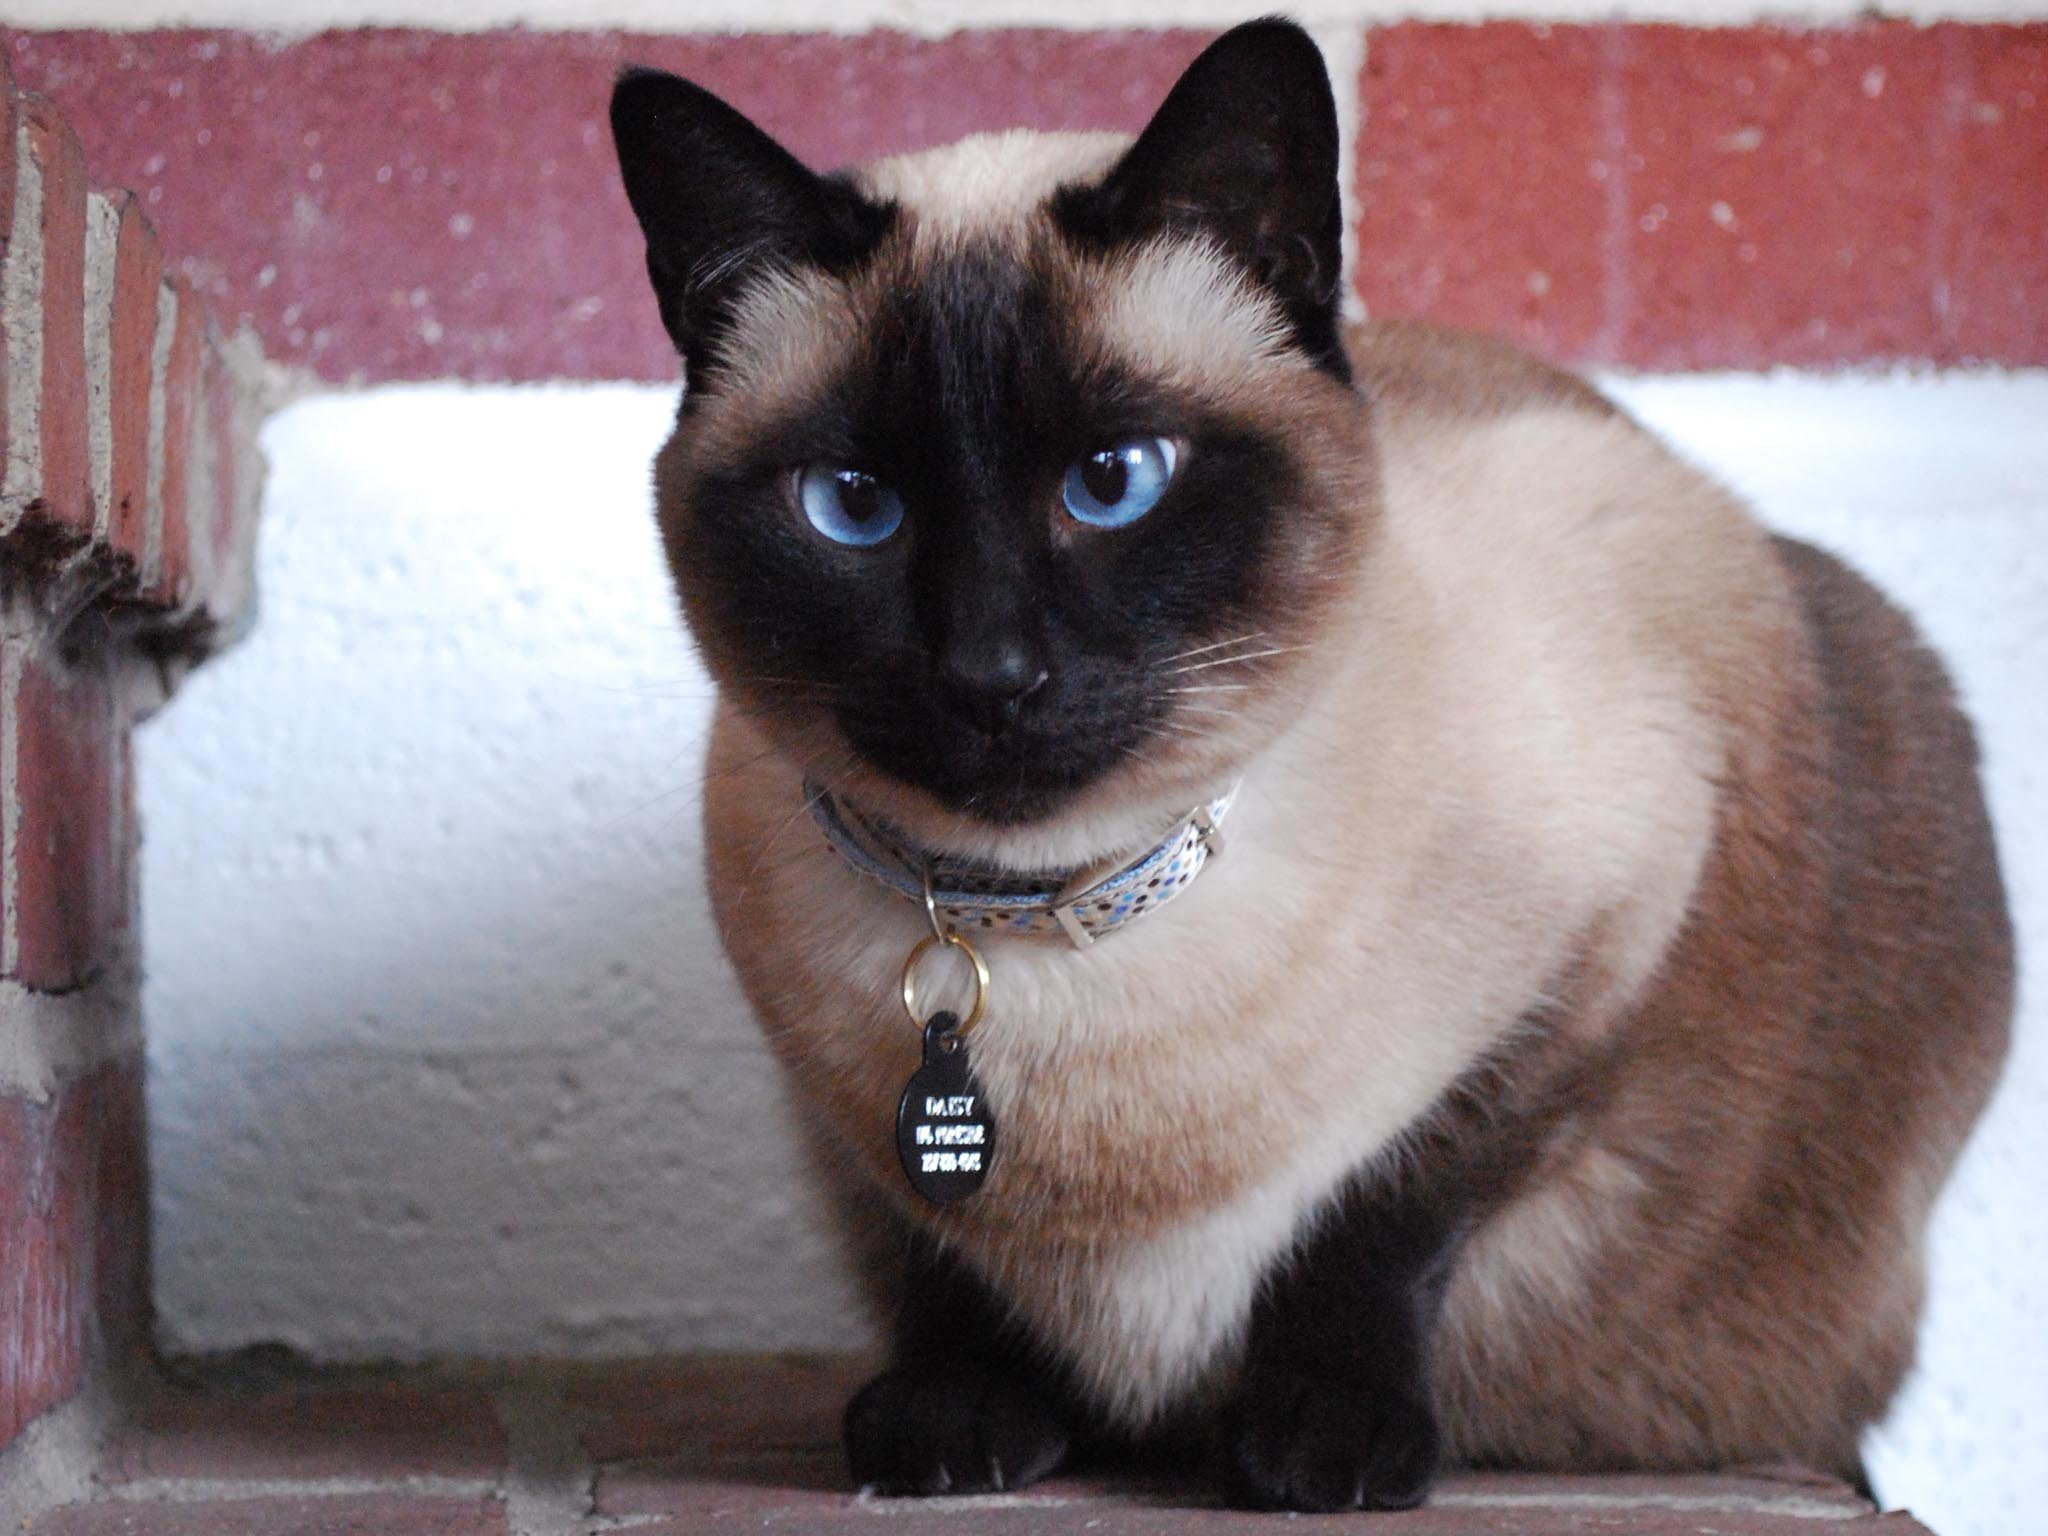 Best Siamese Cat wallpaper ID:53379 for High Resolution hd 2048x1536 computer